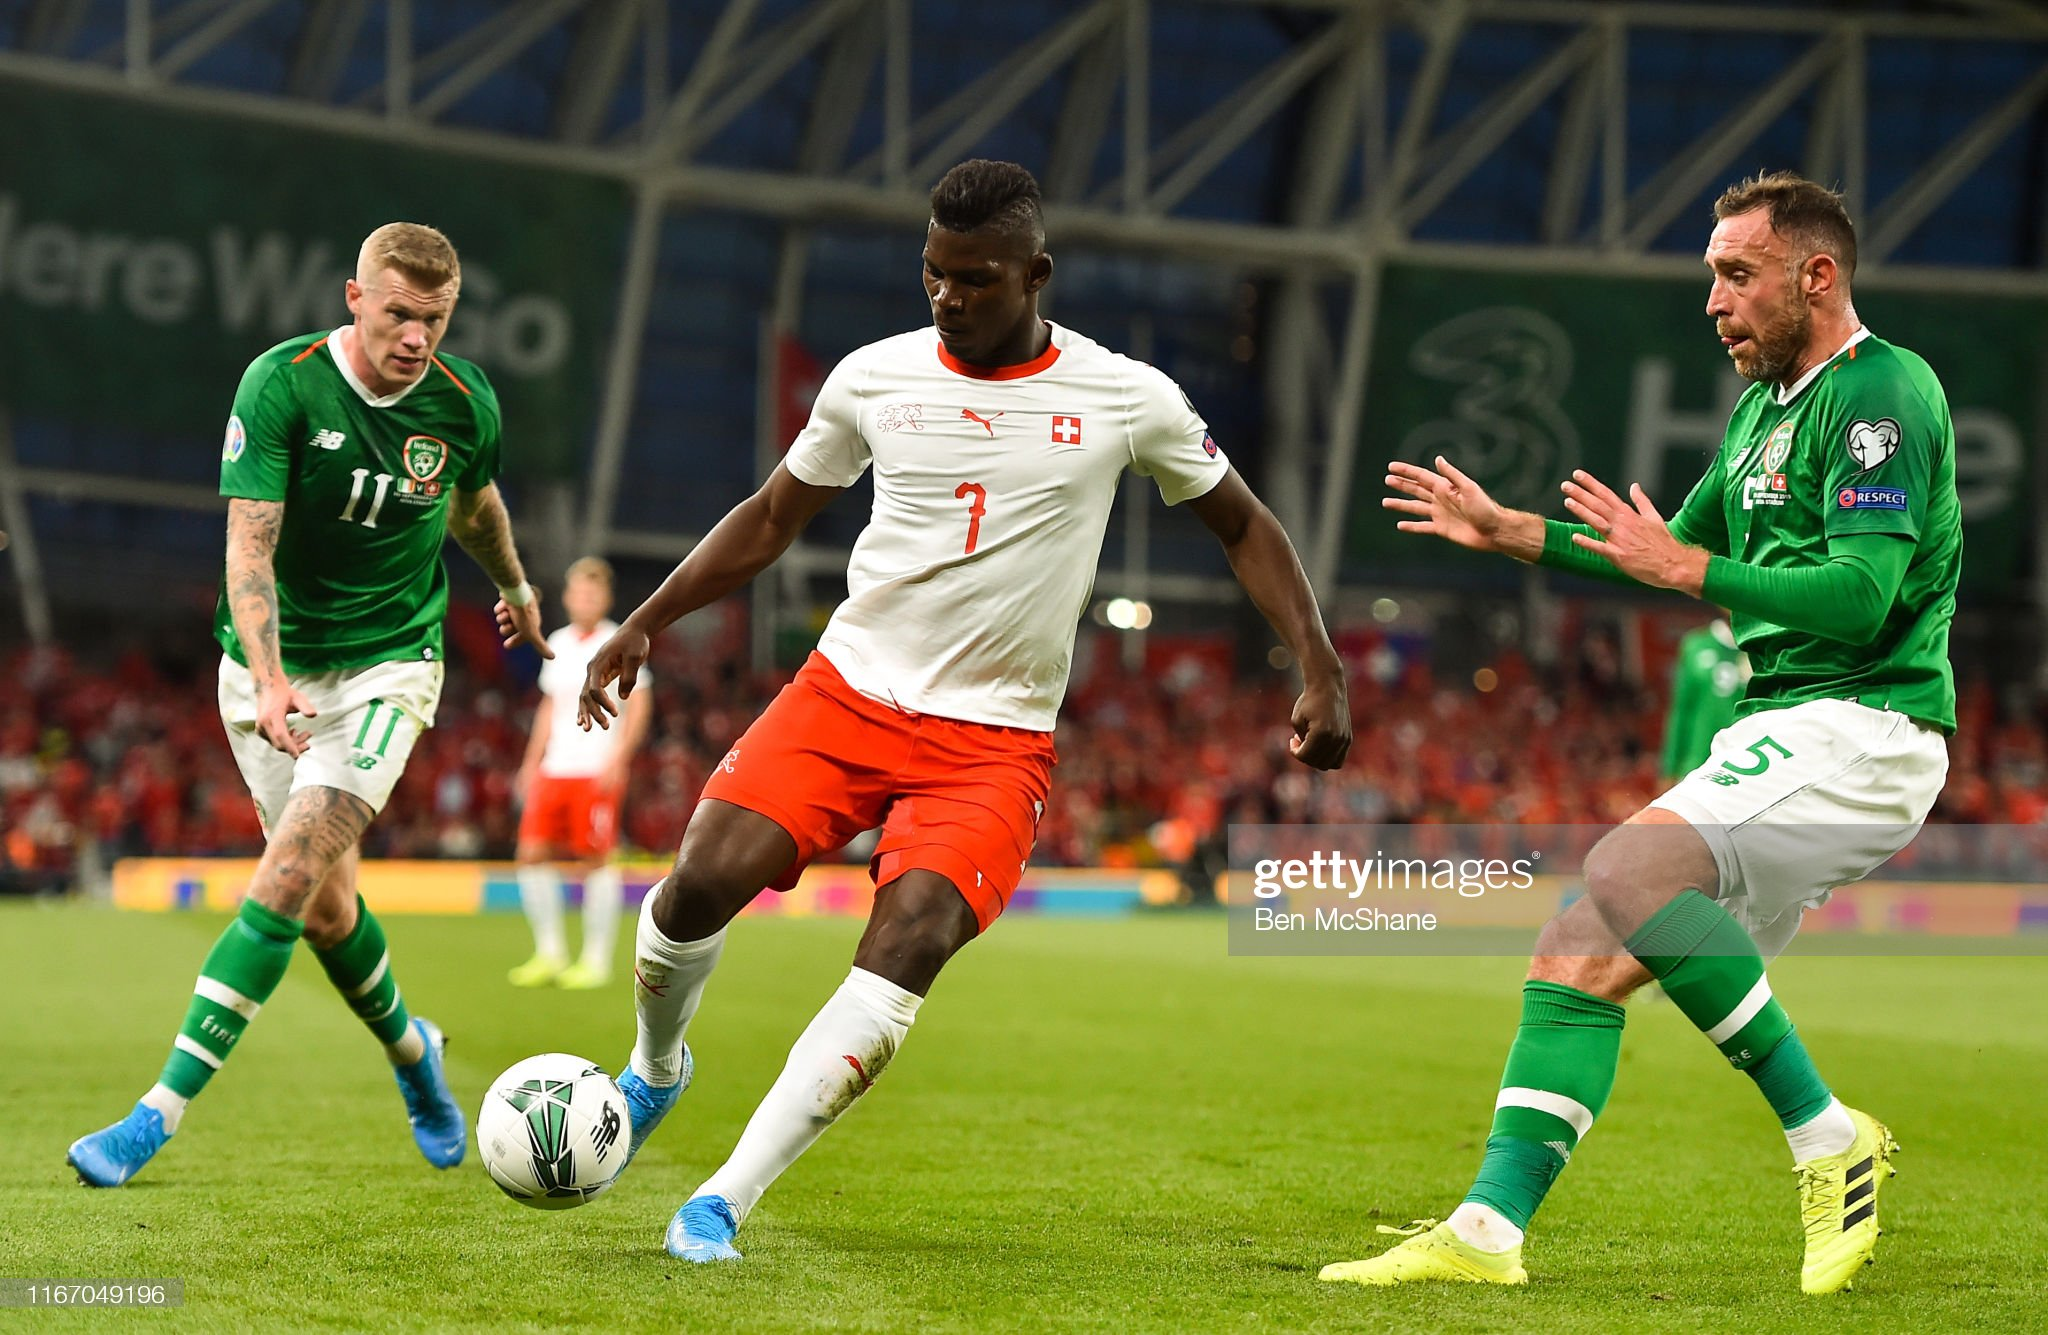 Switzerland v Republic of Ireland preview, prediction and odds